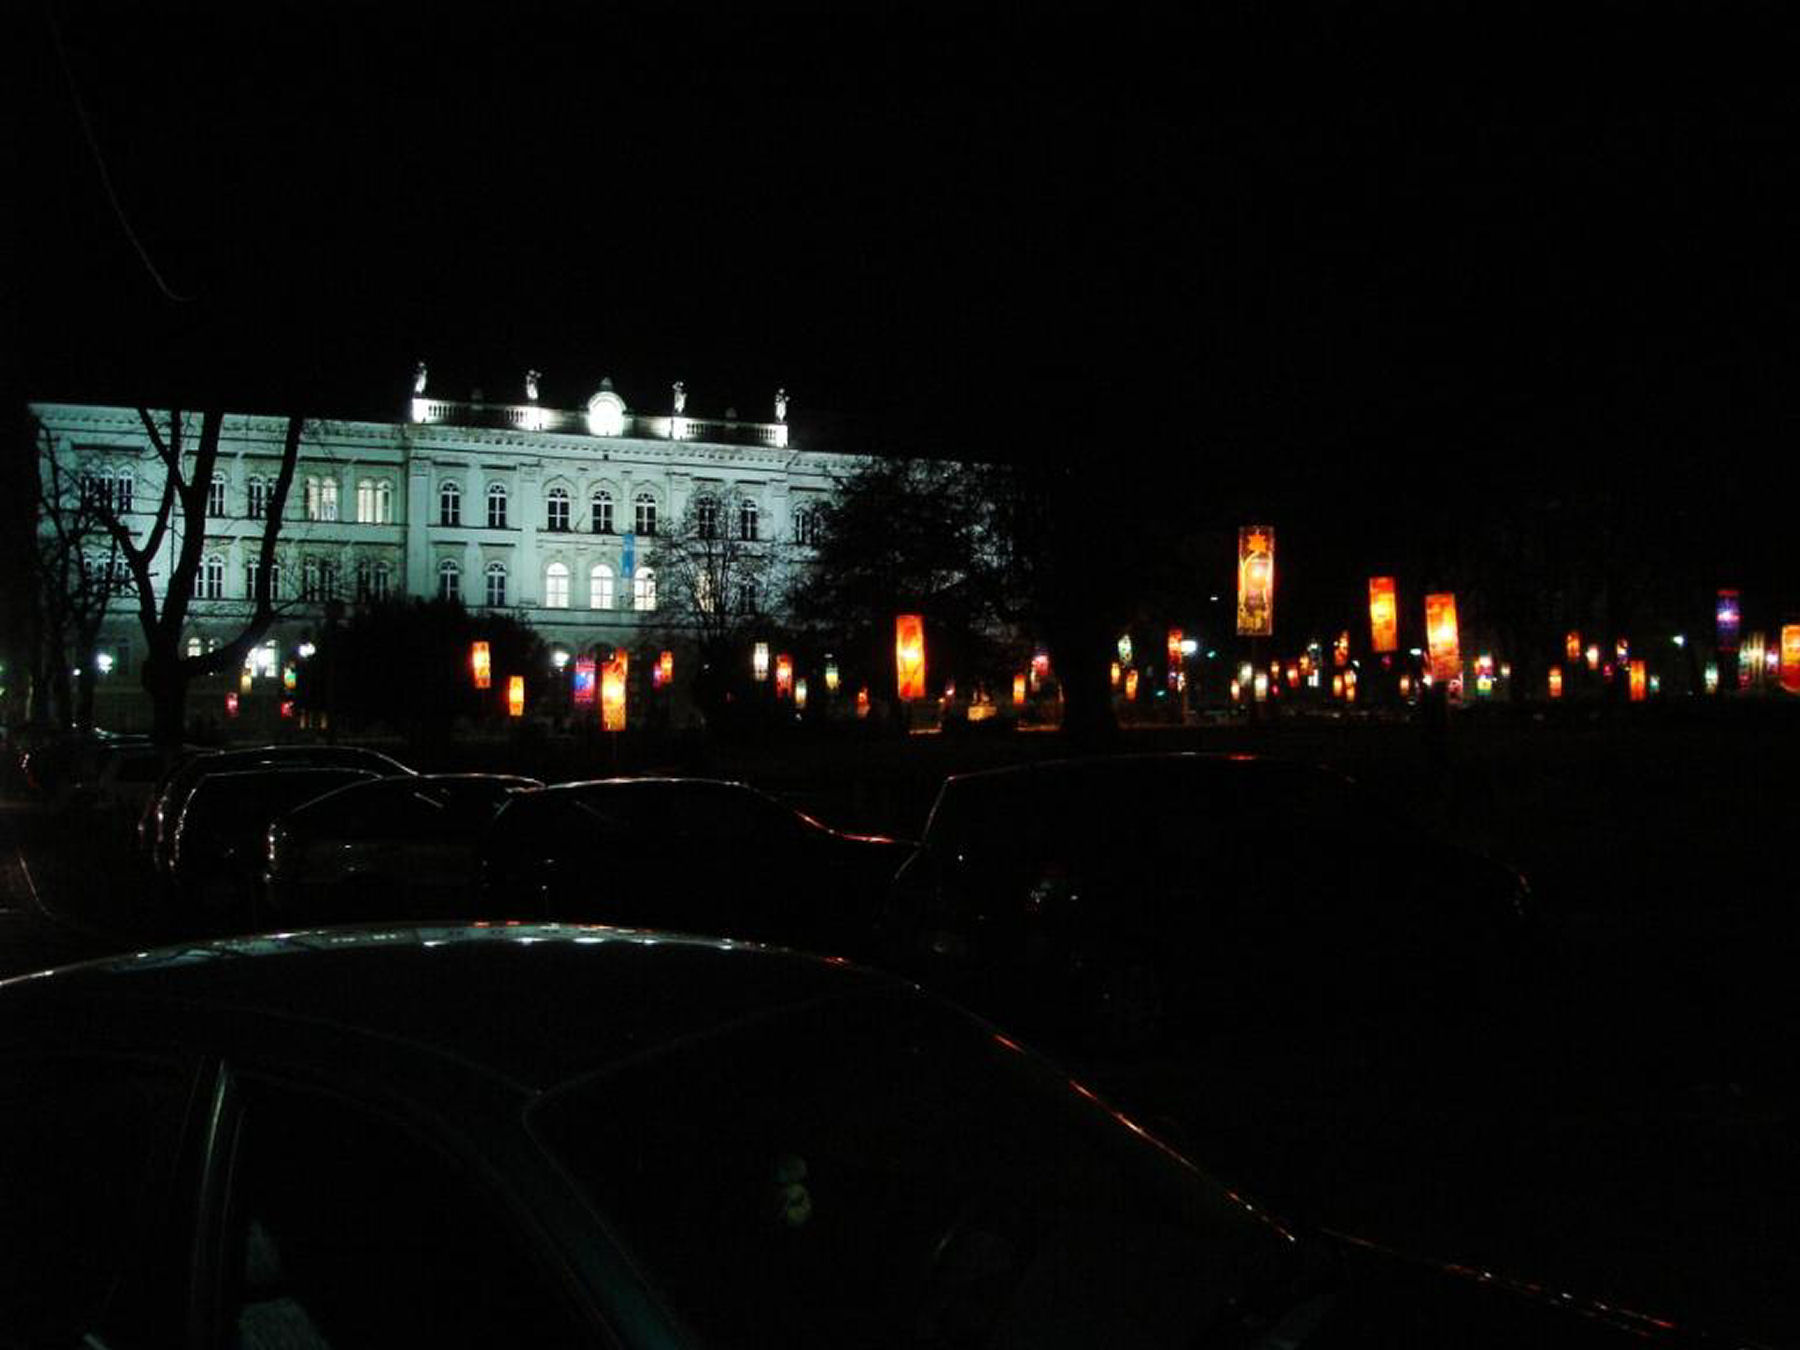 Chinese lanterns on the General Maister square in Maribor, Slovenia